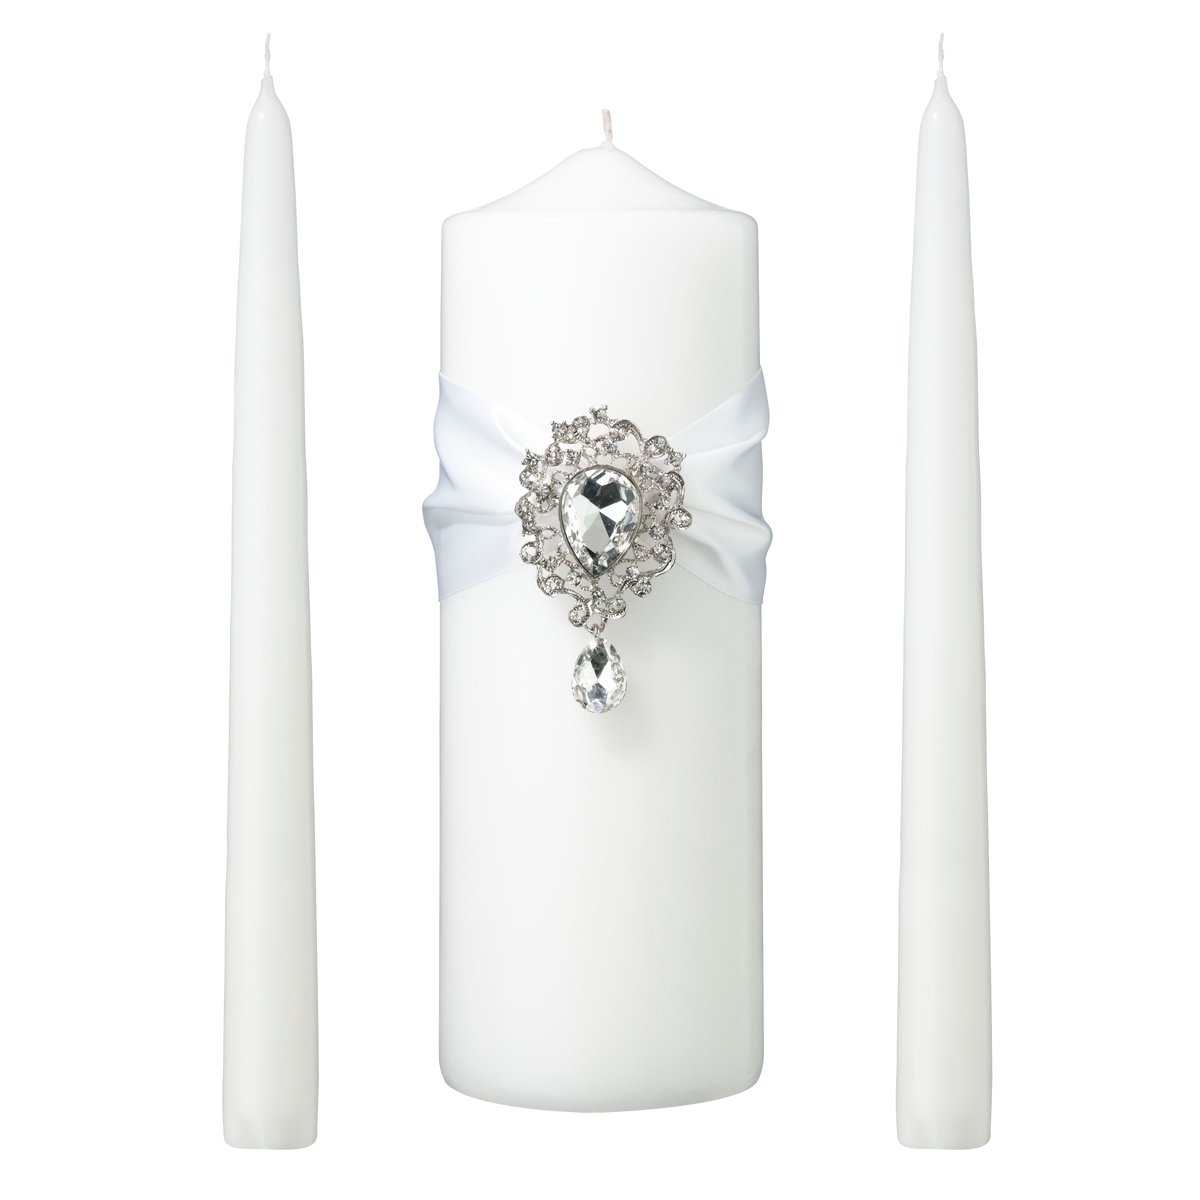 Lillian Rose AZ100001 W Jeweled Unity Candle Wedding Ceremony Set, White